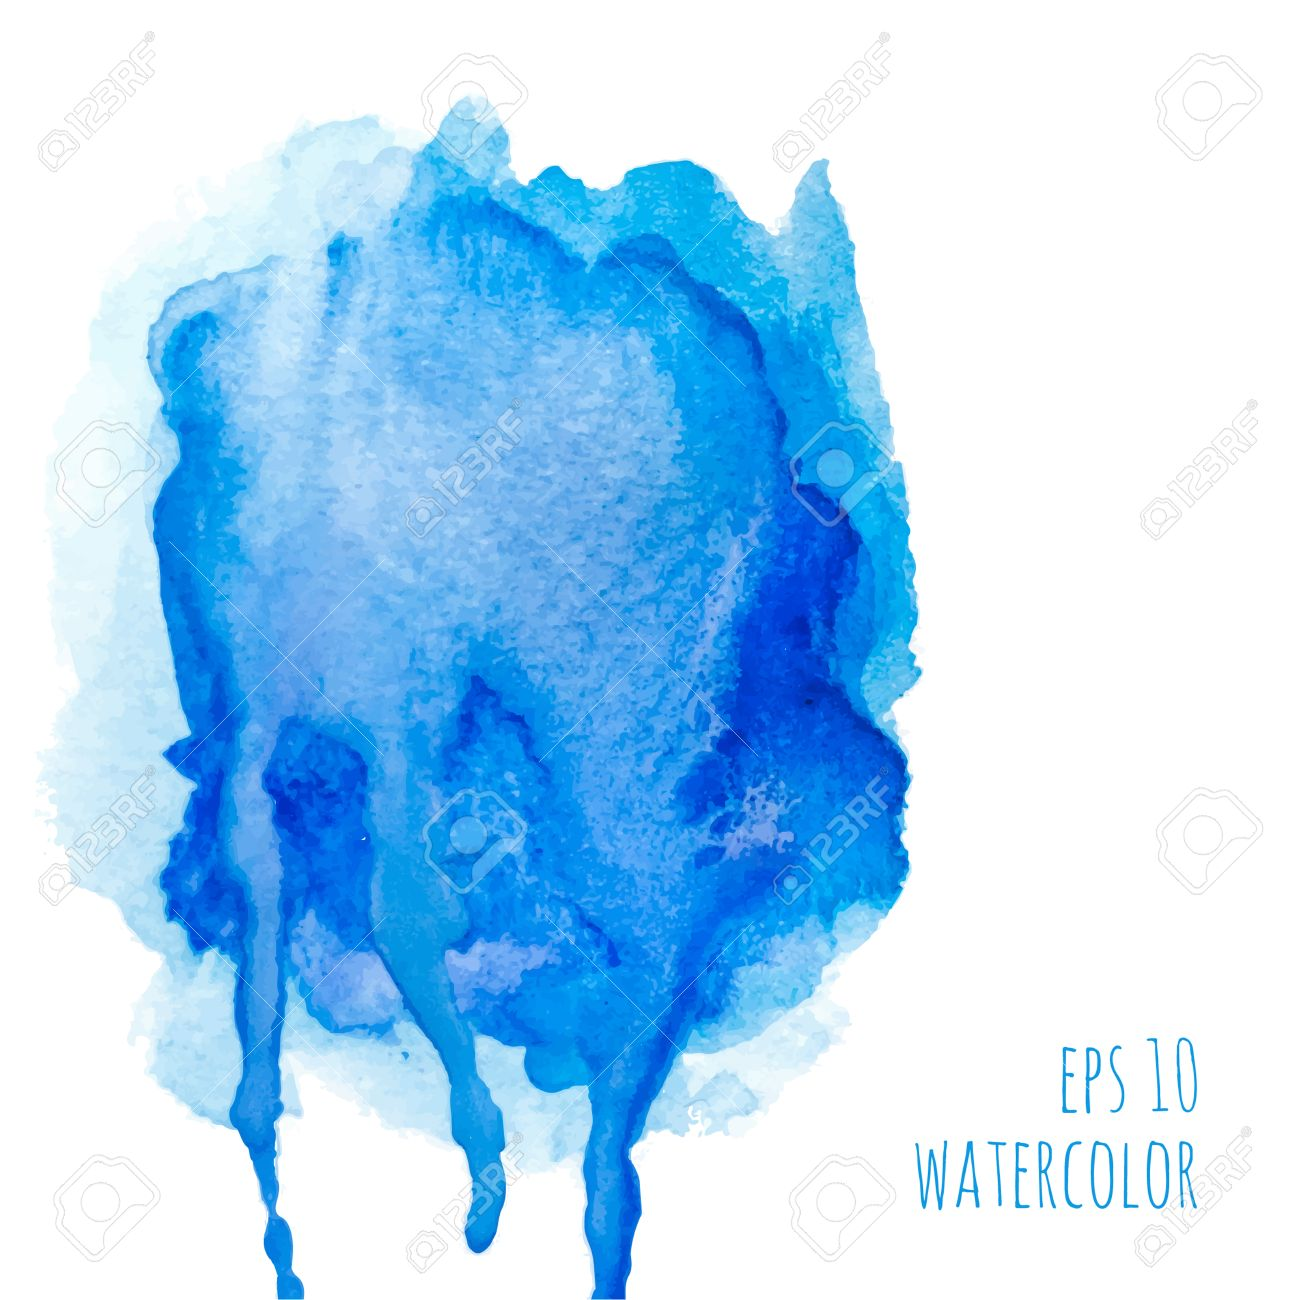 Vector Watercolor Stain With Streaks Of Paint. Blue. Template ...